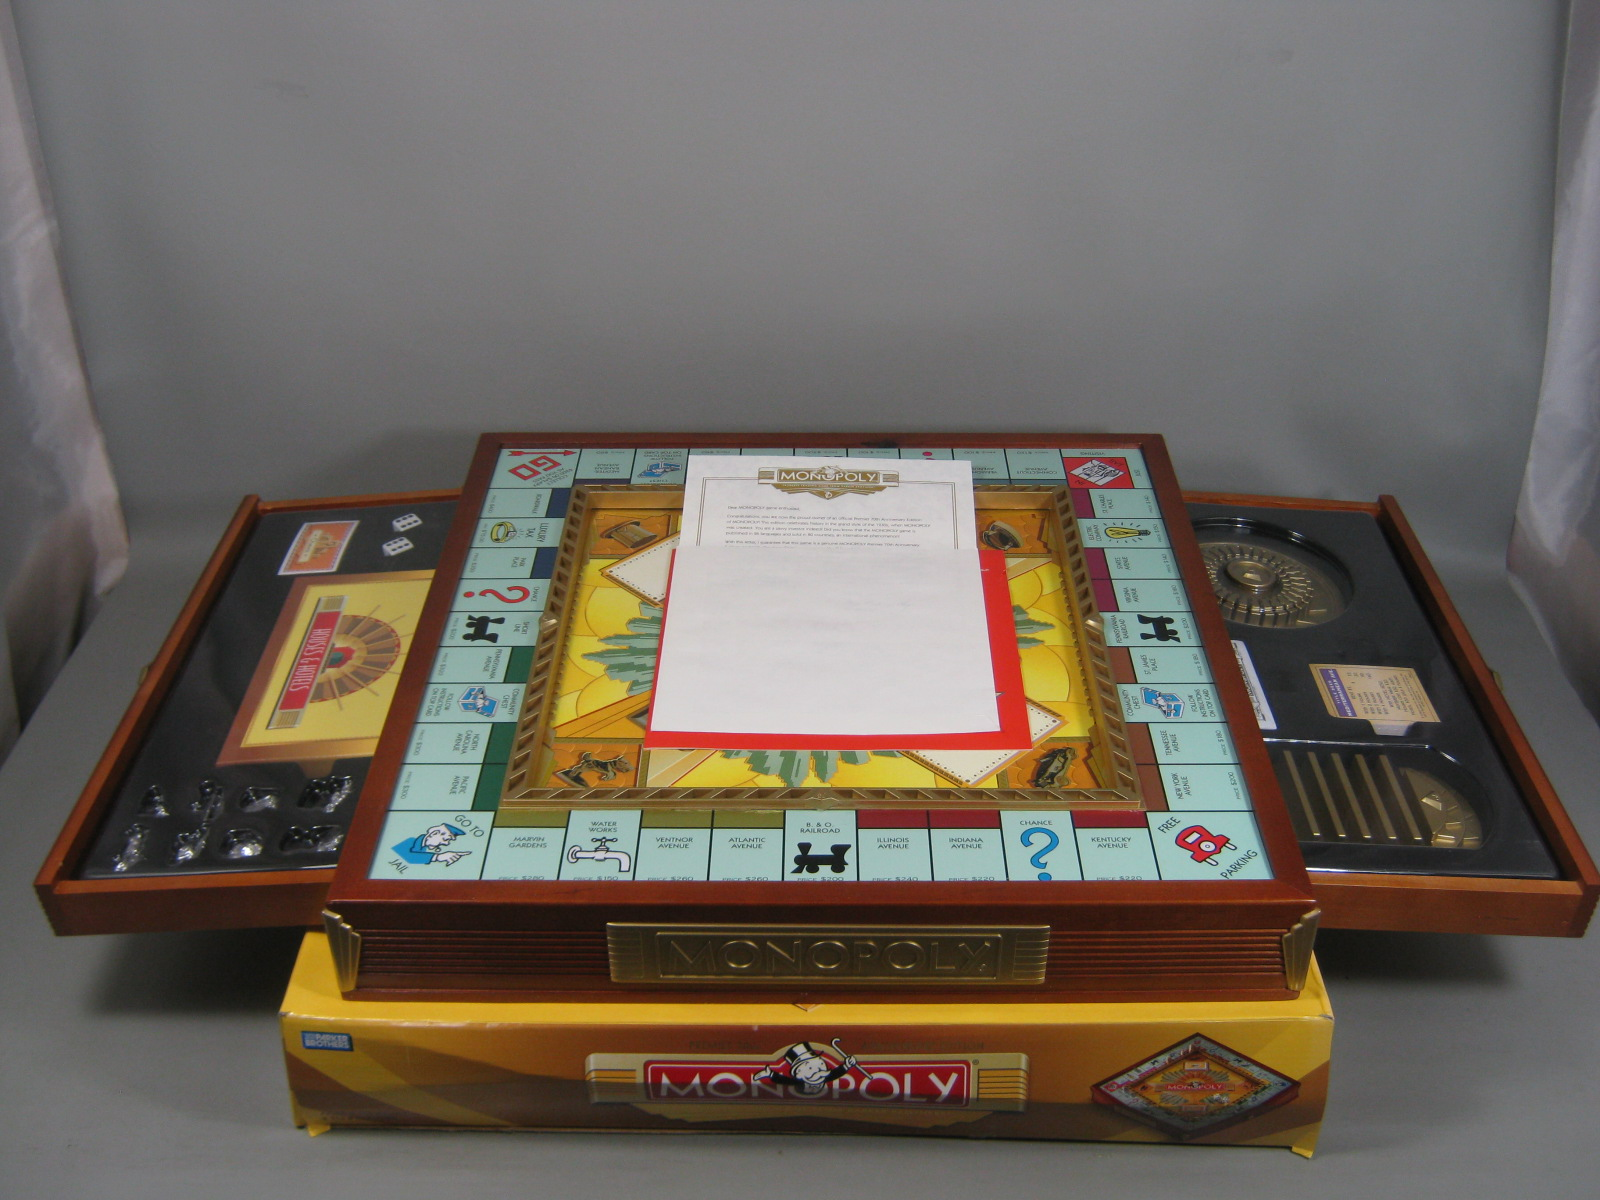 Click Here To Look At Our Other EBay Listings For More Antiques And Collectible Monopoly Games